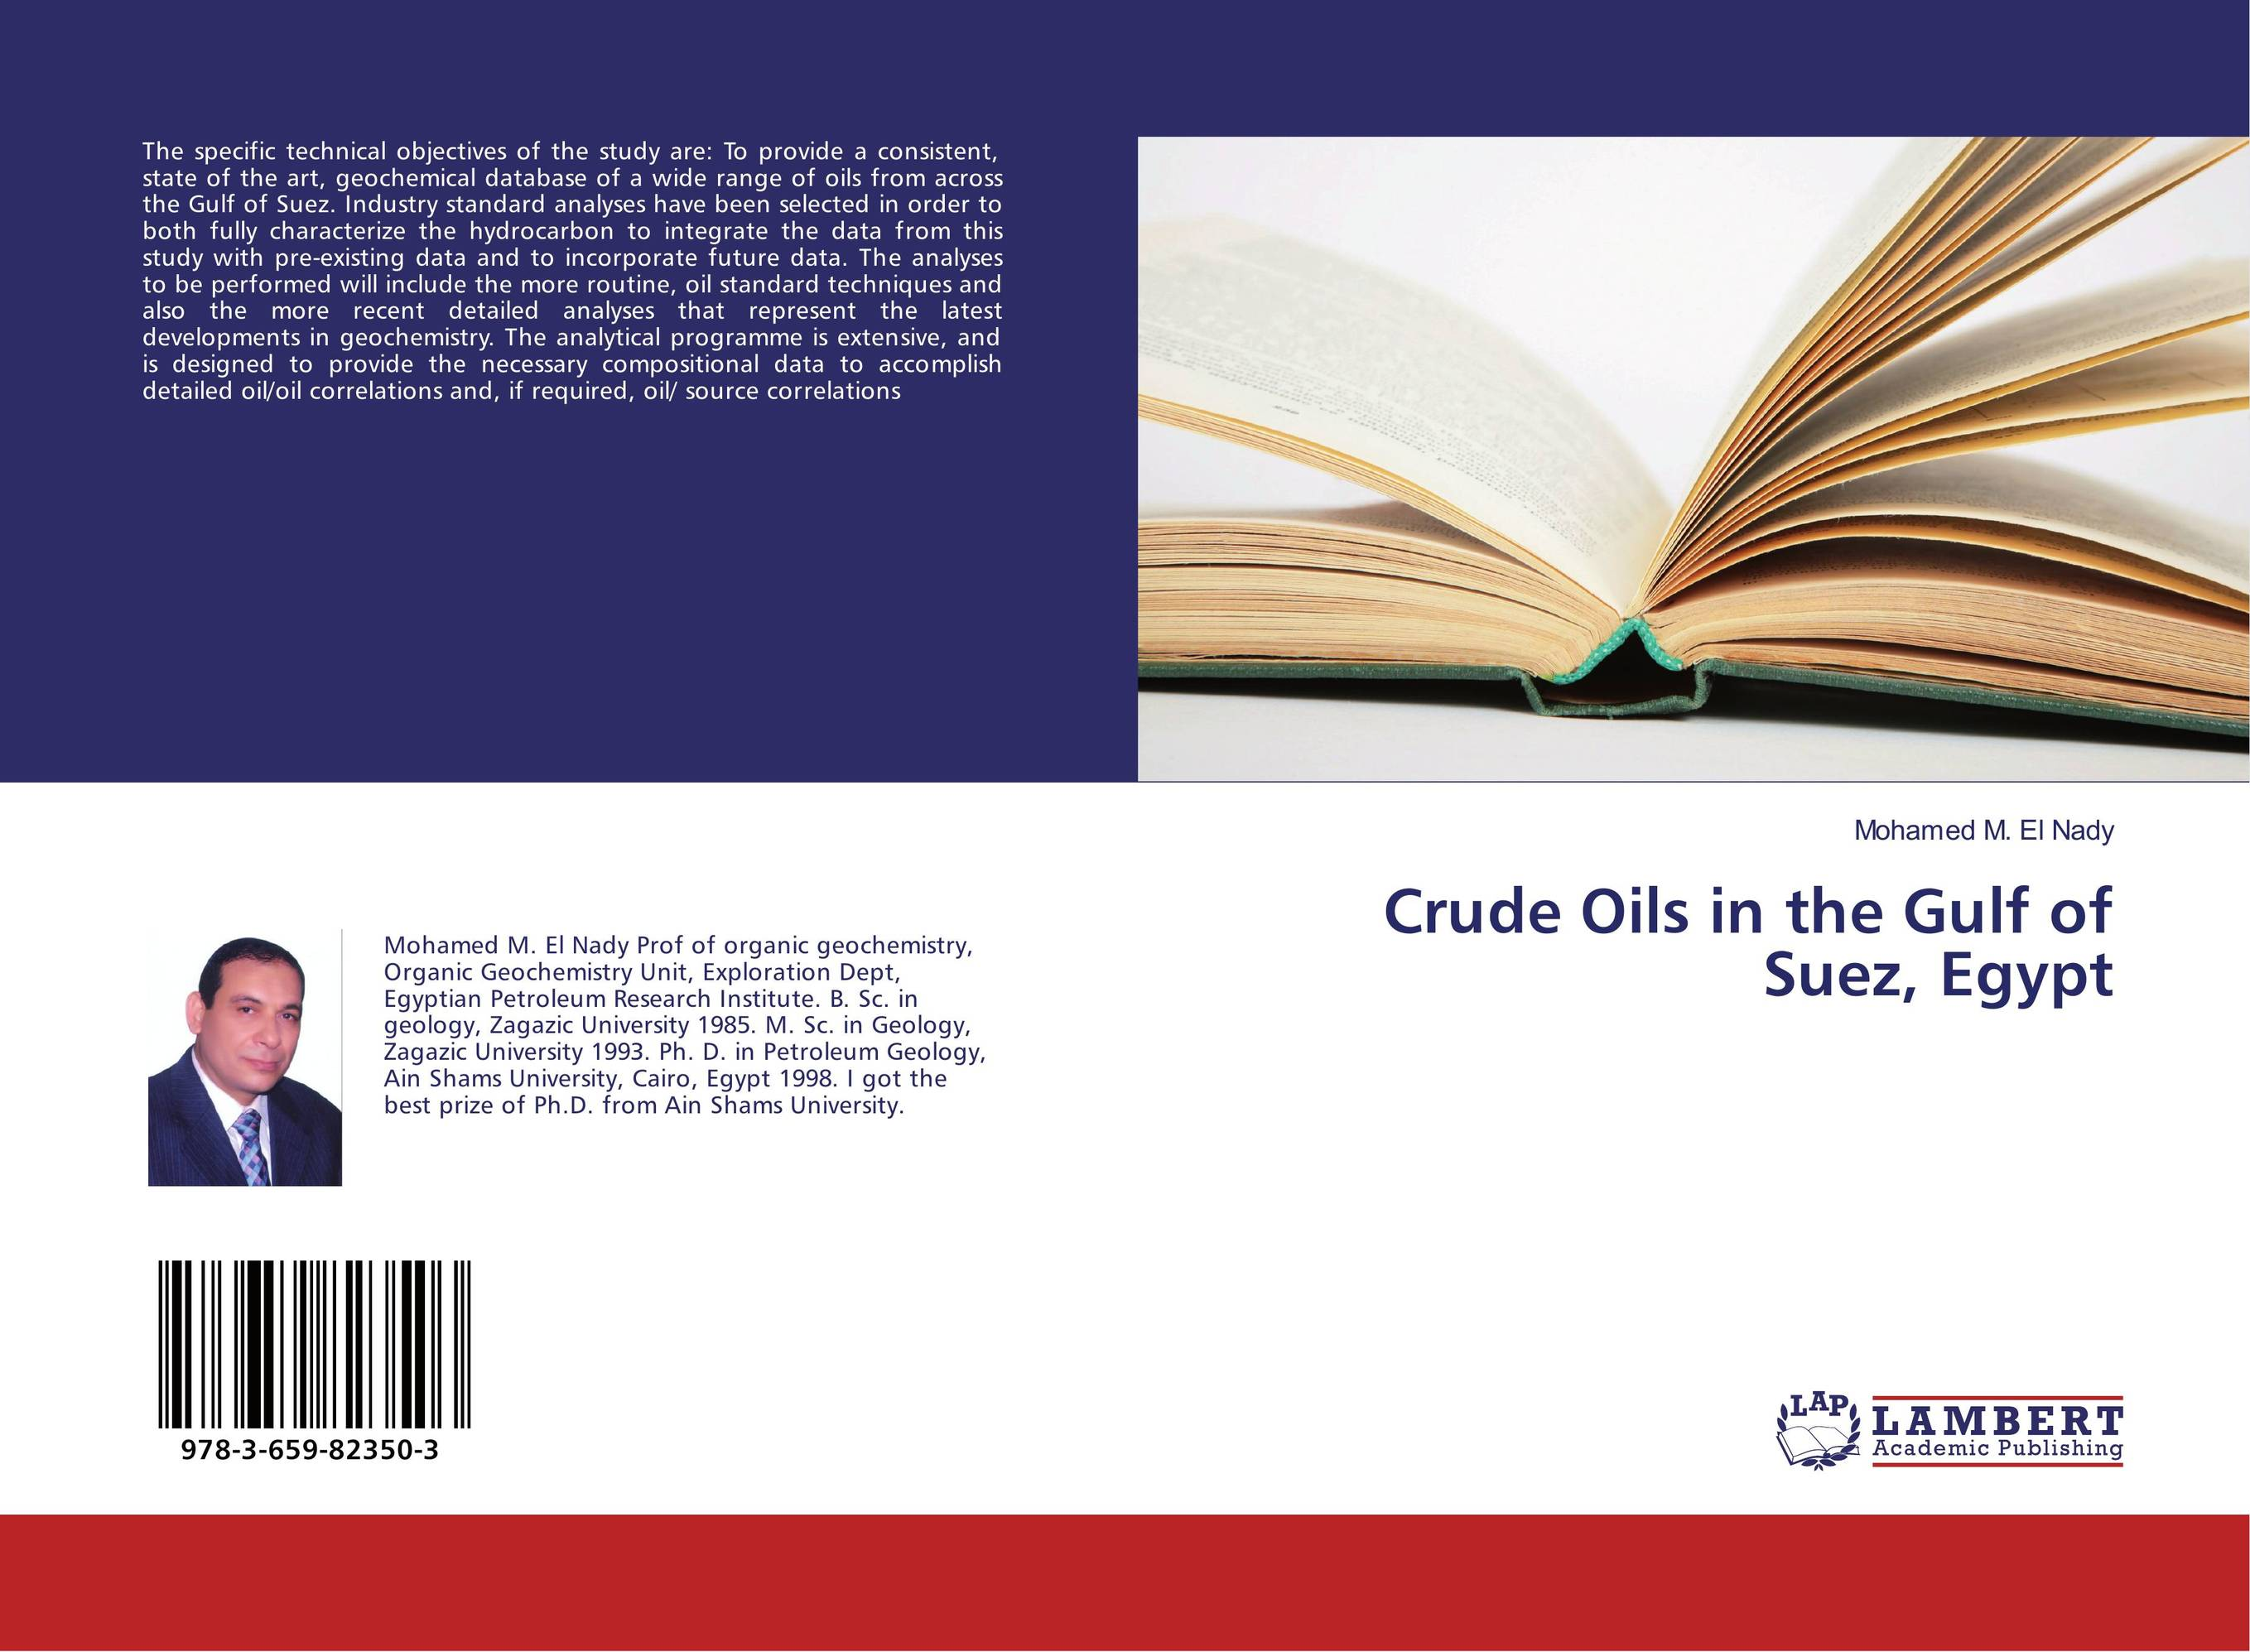 Crude Oils in the Gulf of Suez, Egypt dearomatization of crude oil